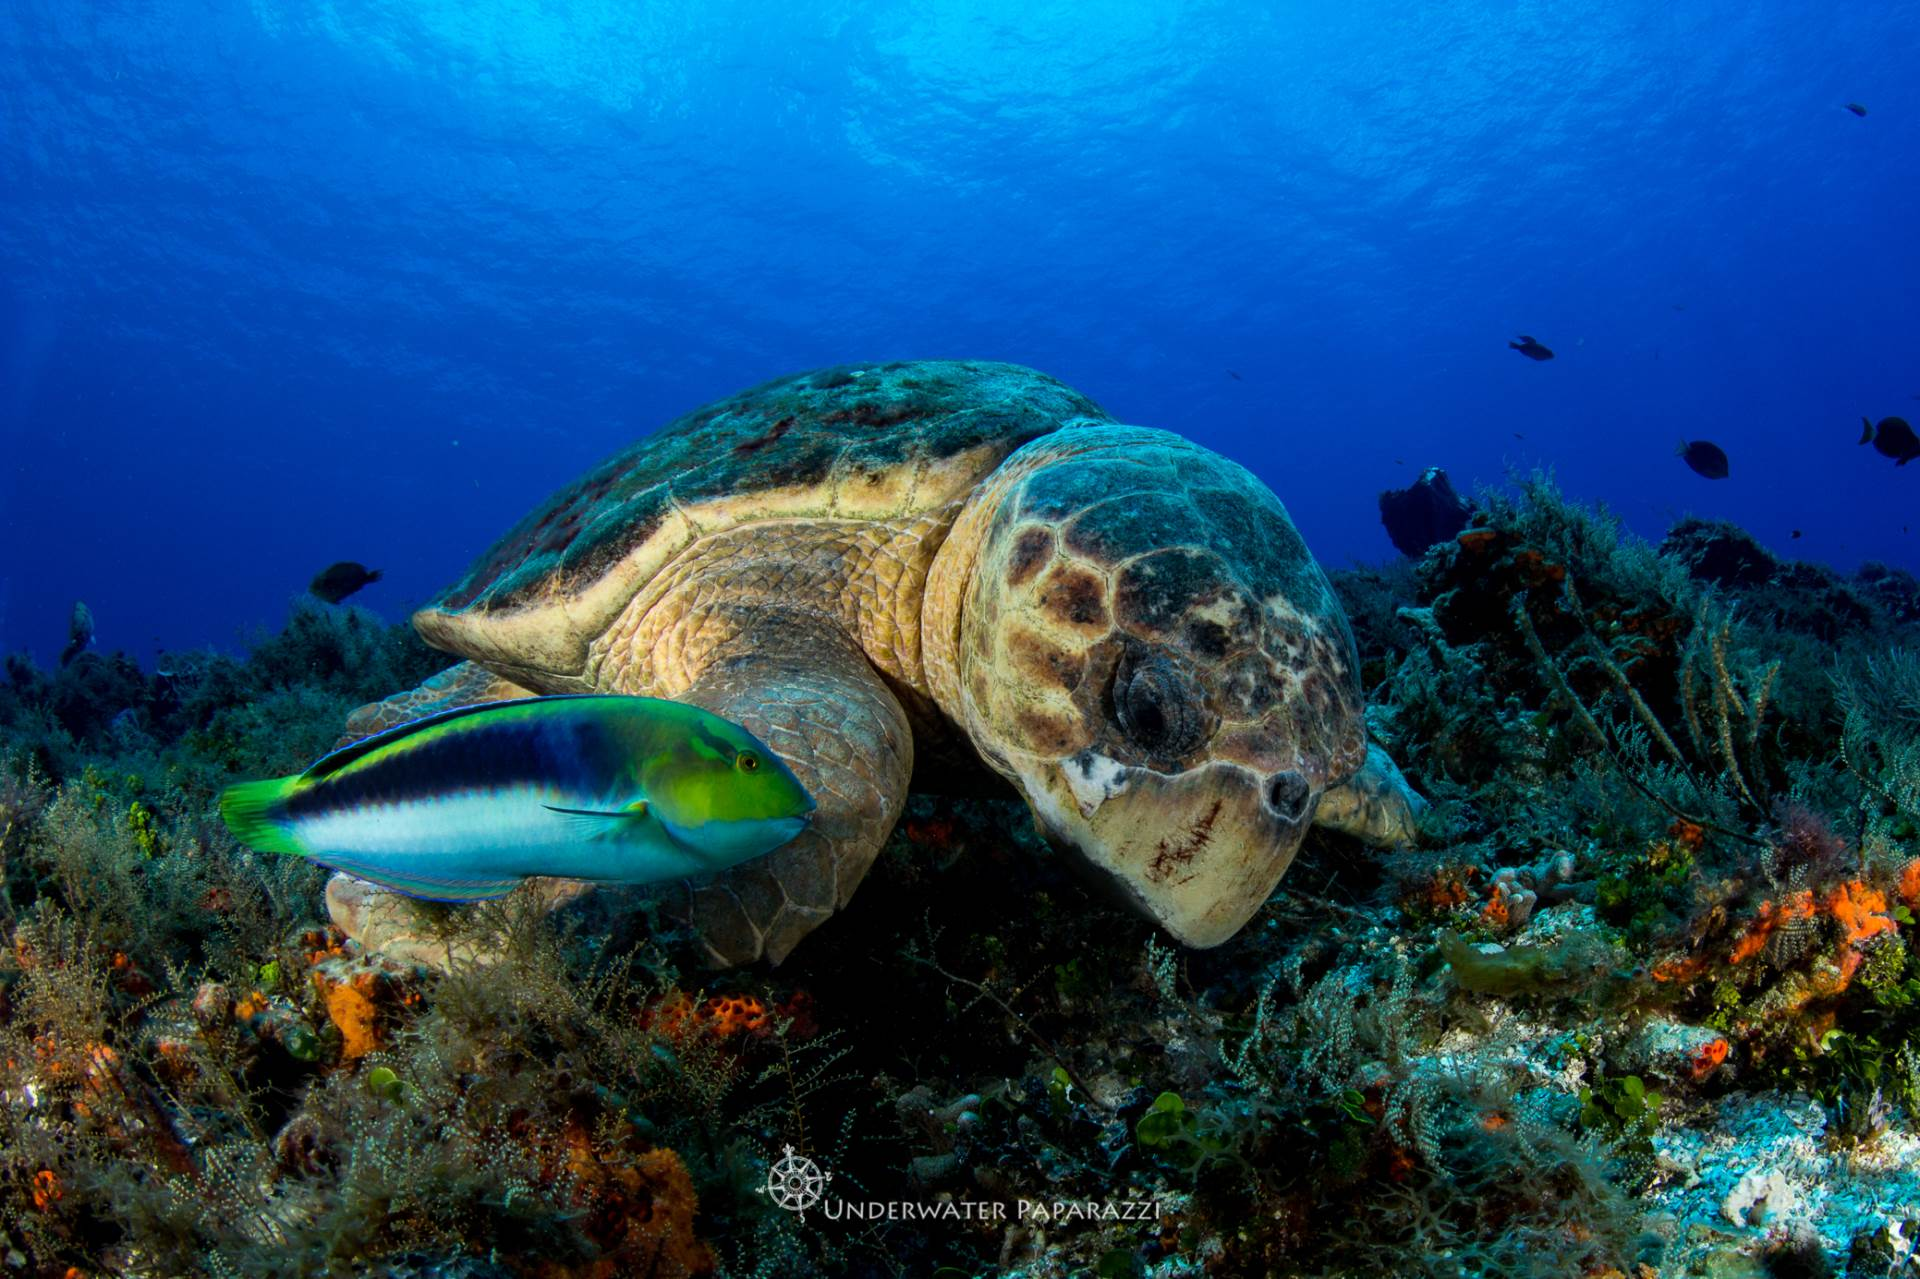 Gorgeous and HUGE loggerhead turtle in amazing Cozumel viz. The turtle was the largest I've personally ever seen underwater, estimating at about 5 ft in length!